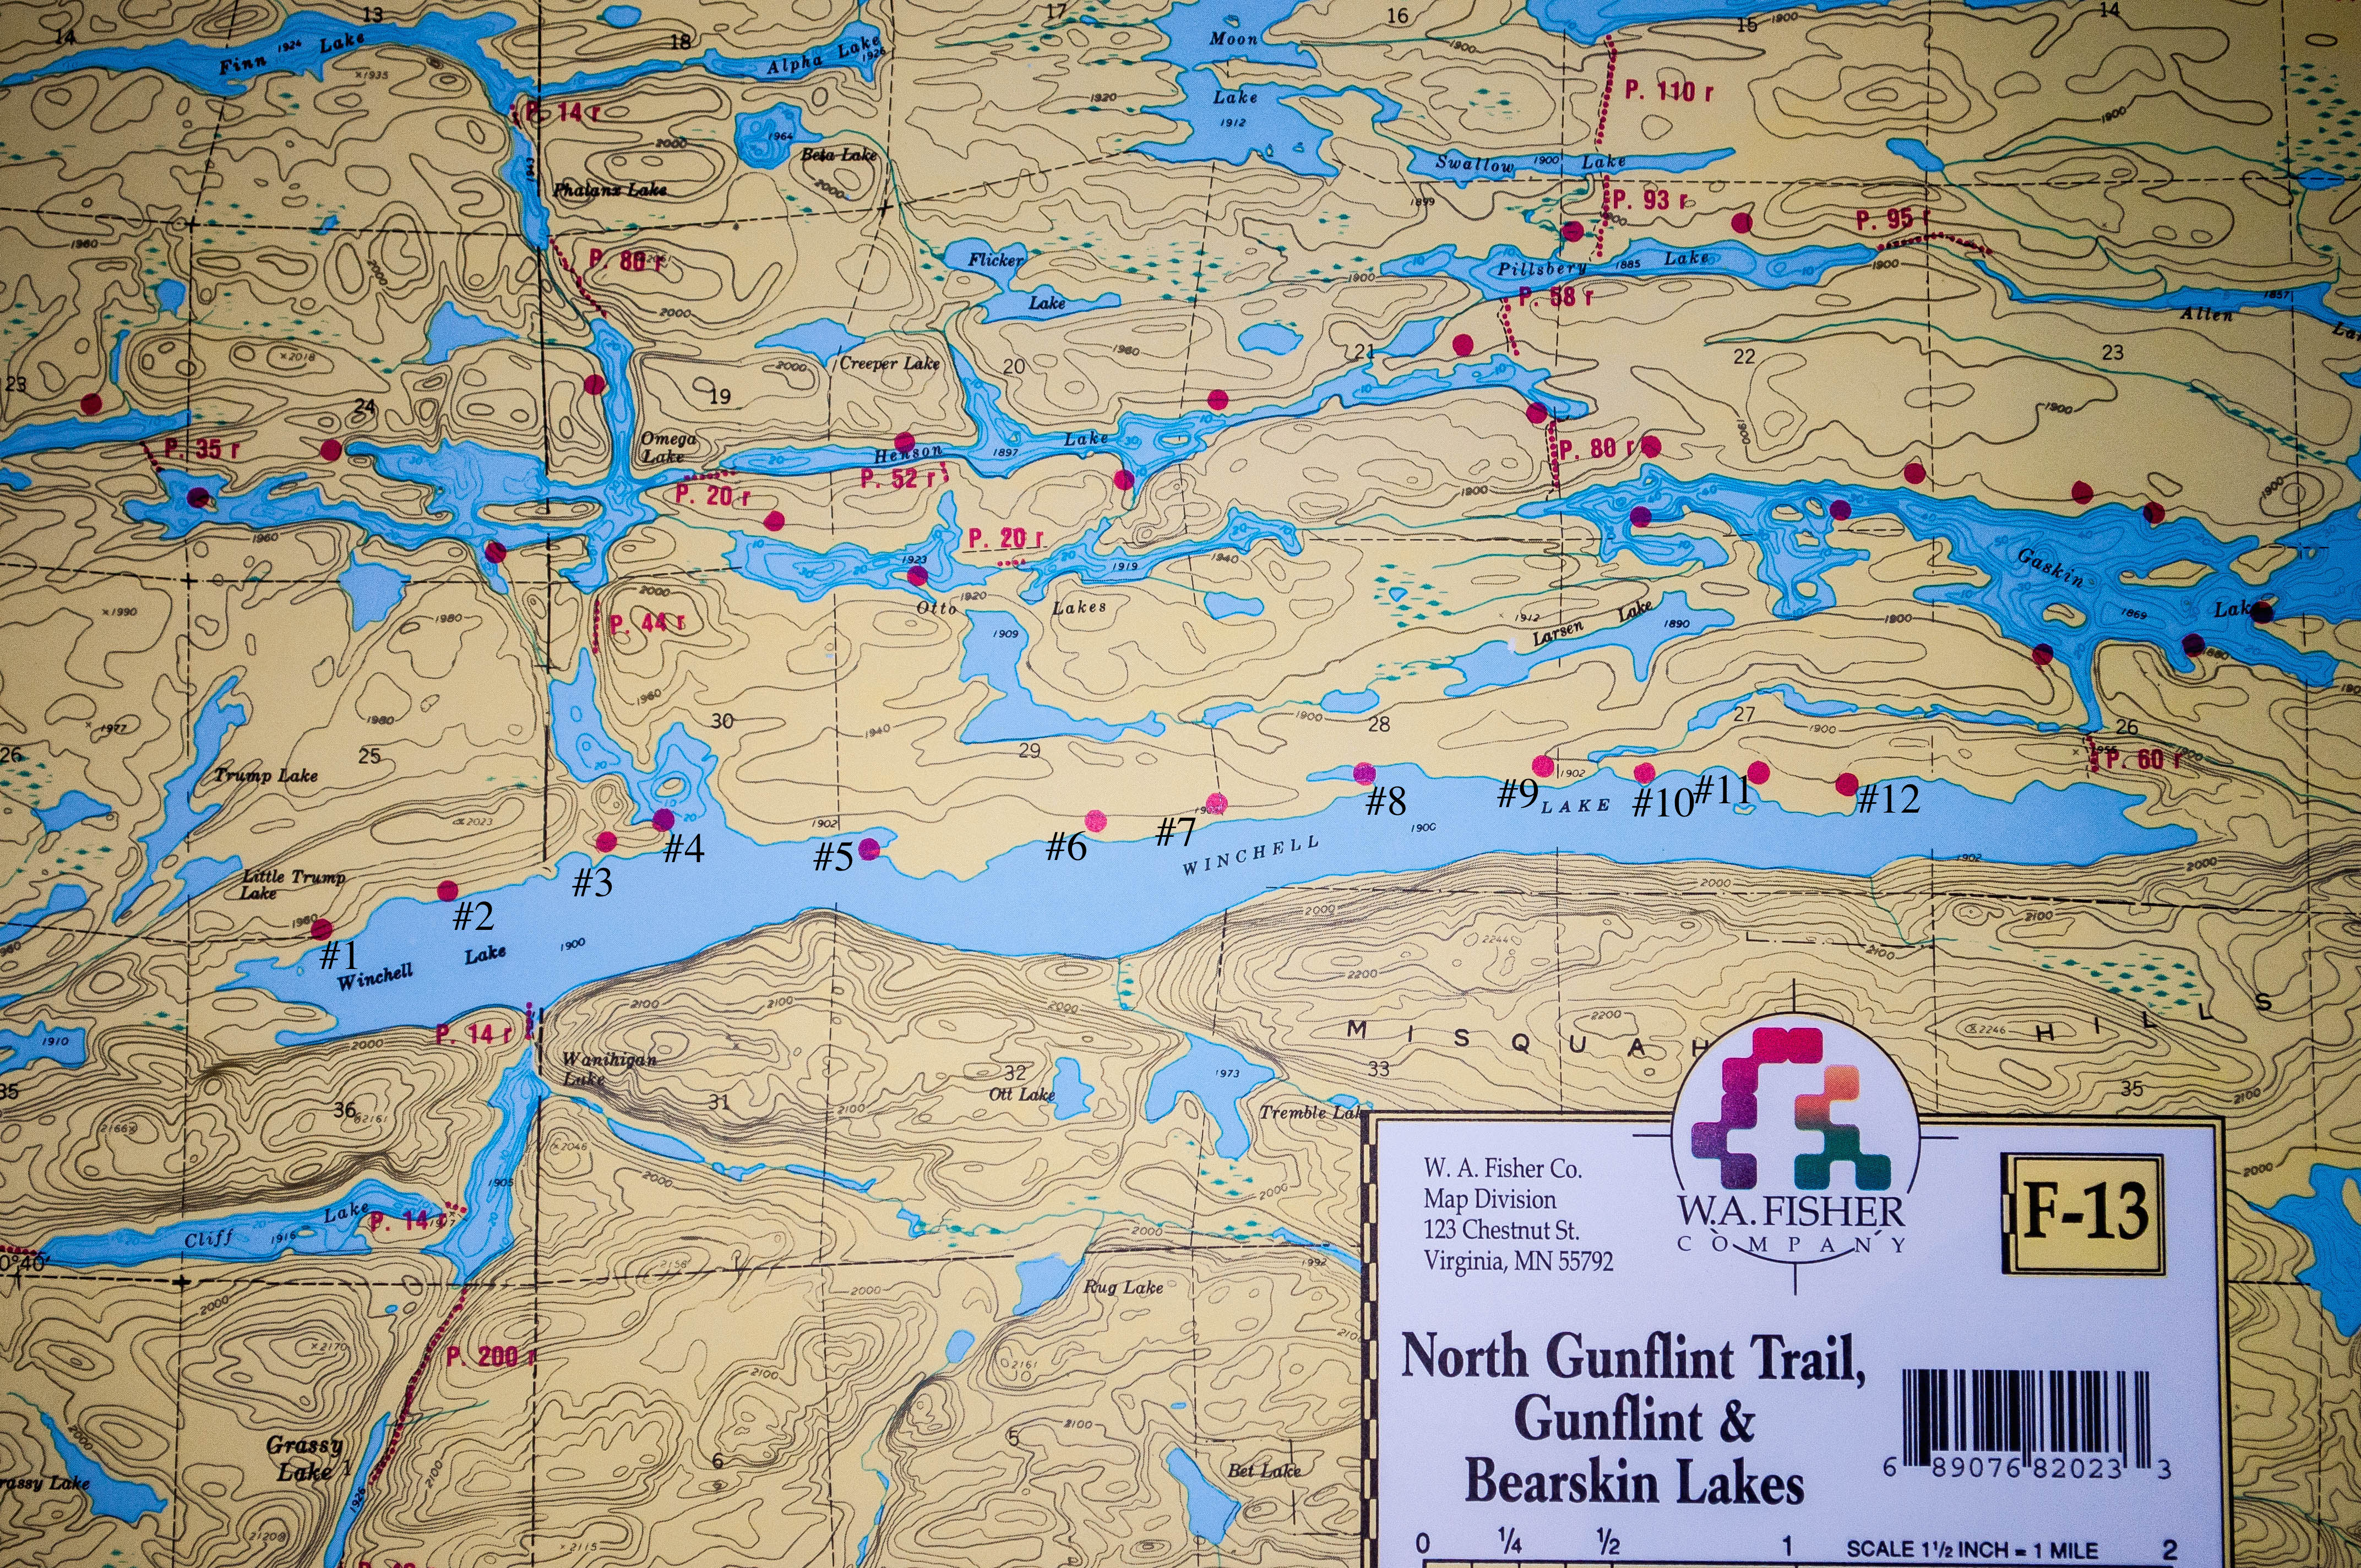 Winchell Lake Clearwater Historic Lodge - Bwca entry point map